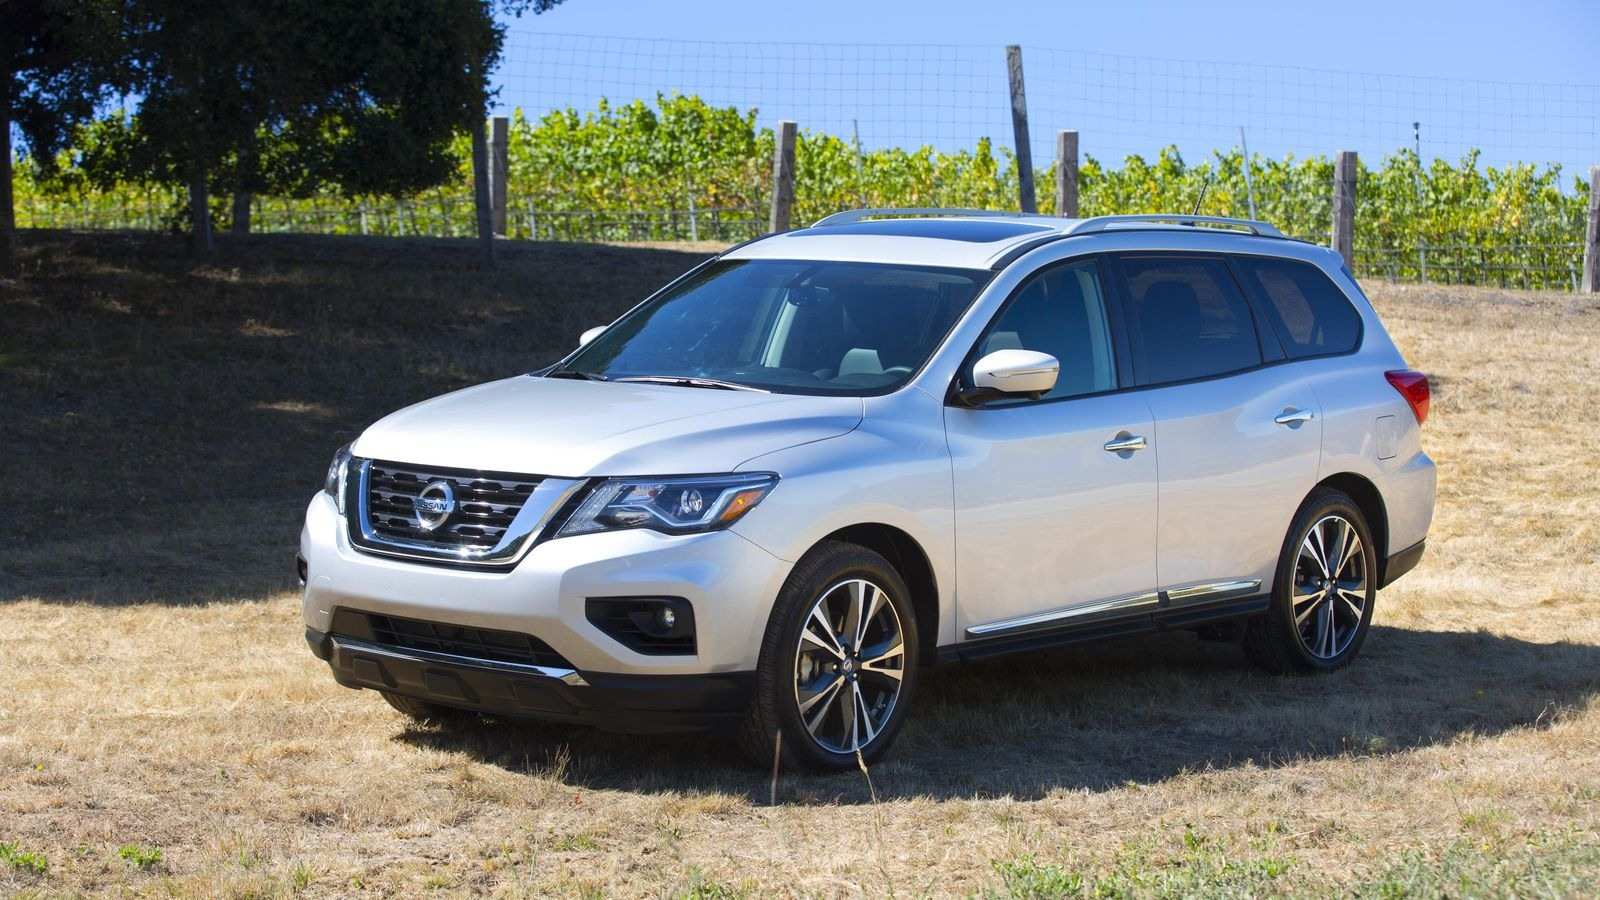 84 A 2020 Nissan Pathfinder Hybrid Redesign And Review